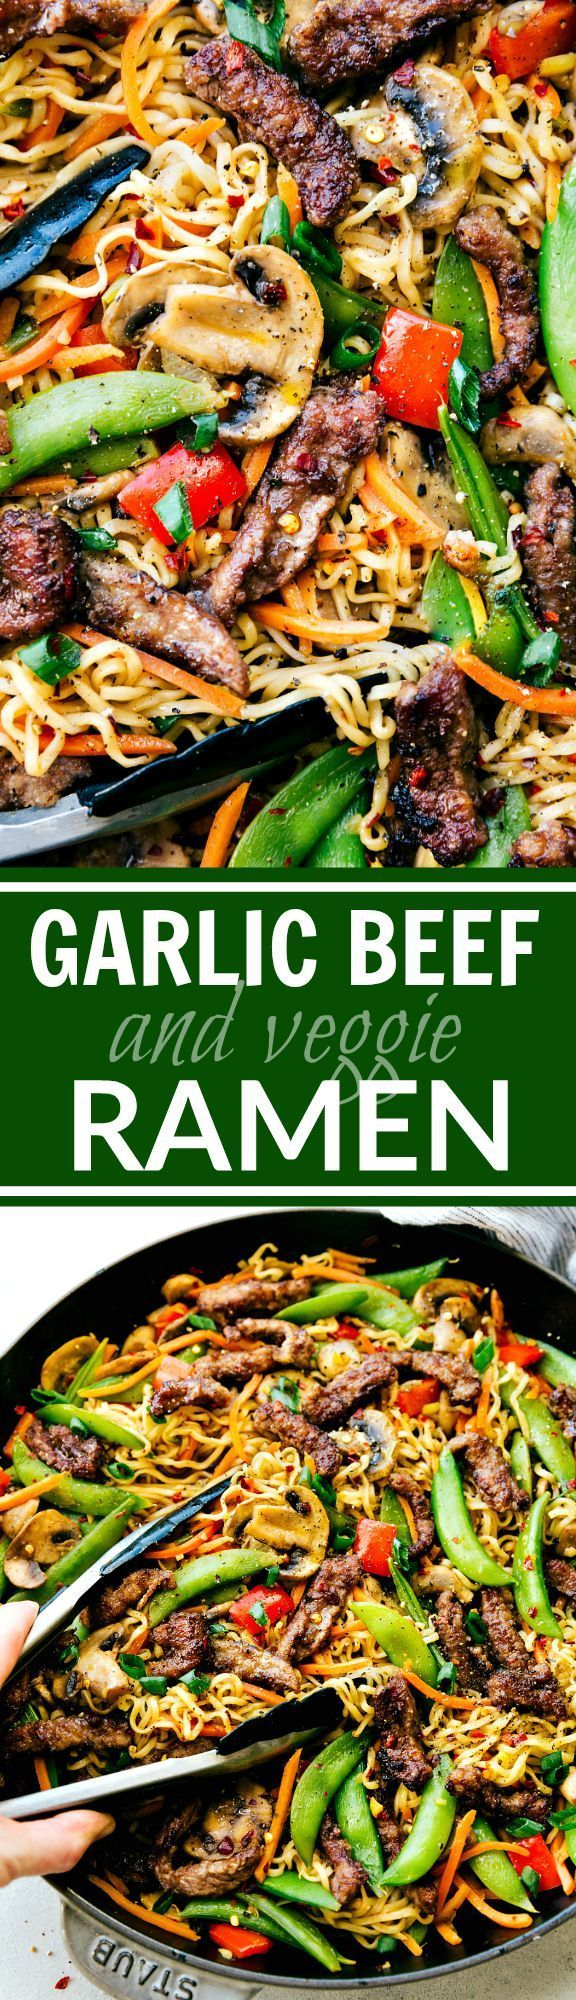 1832 best 30 minute meals images on pinterest clean eating meals garlic beef and veggie ramen is an easy 30 minute dinner recipe that is so forumfinder Choice Image